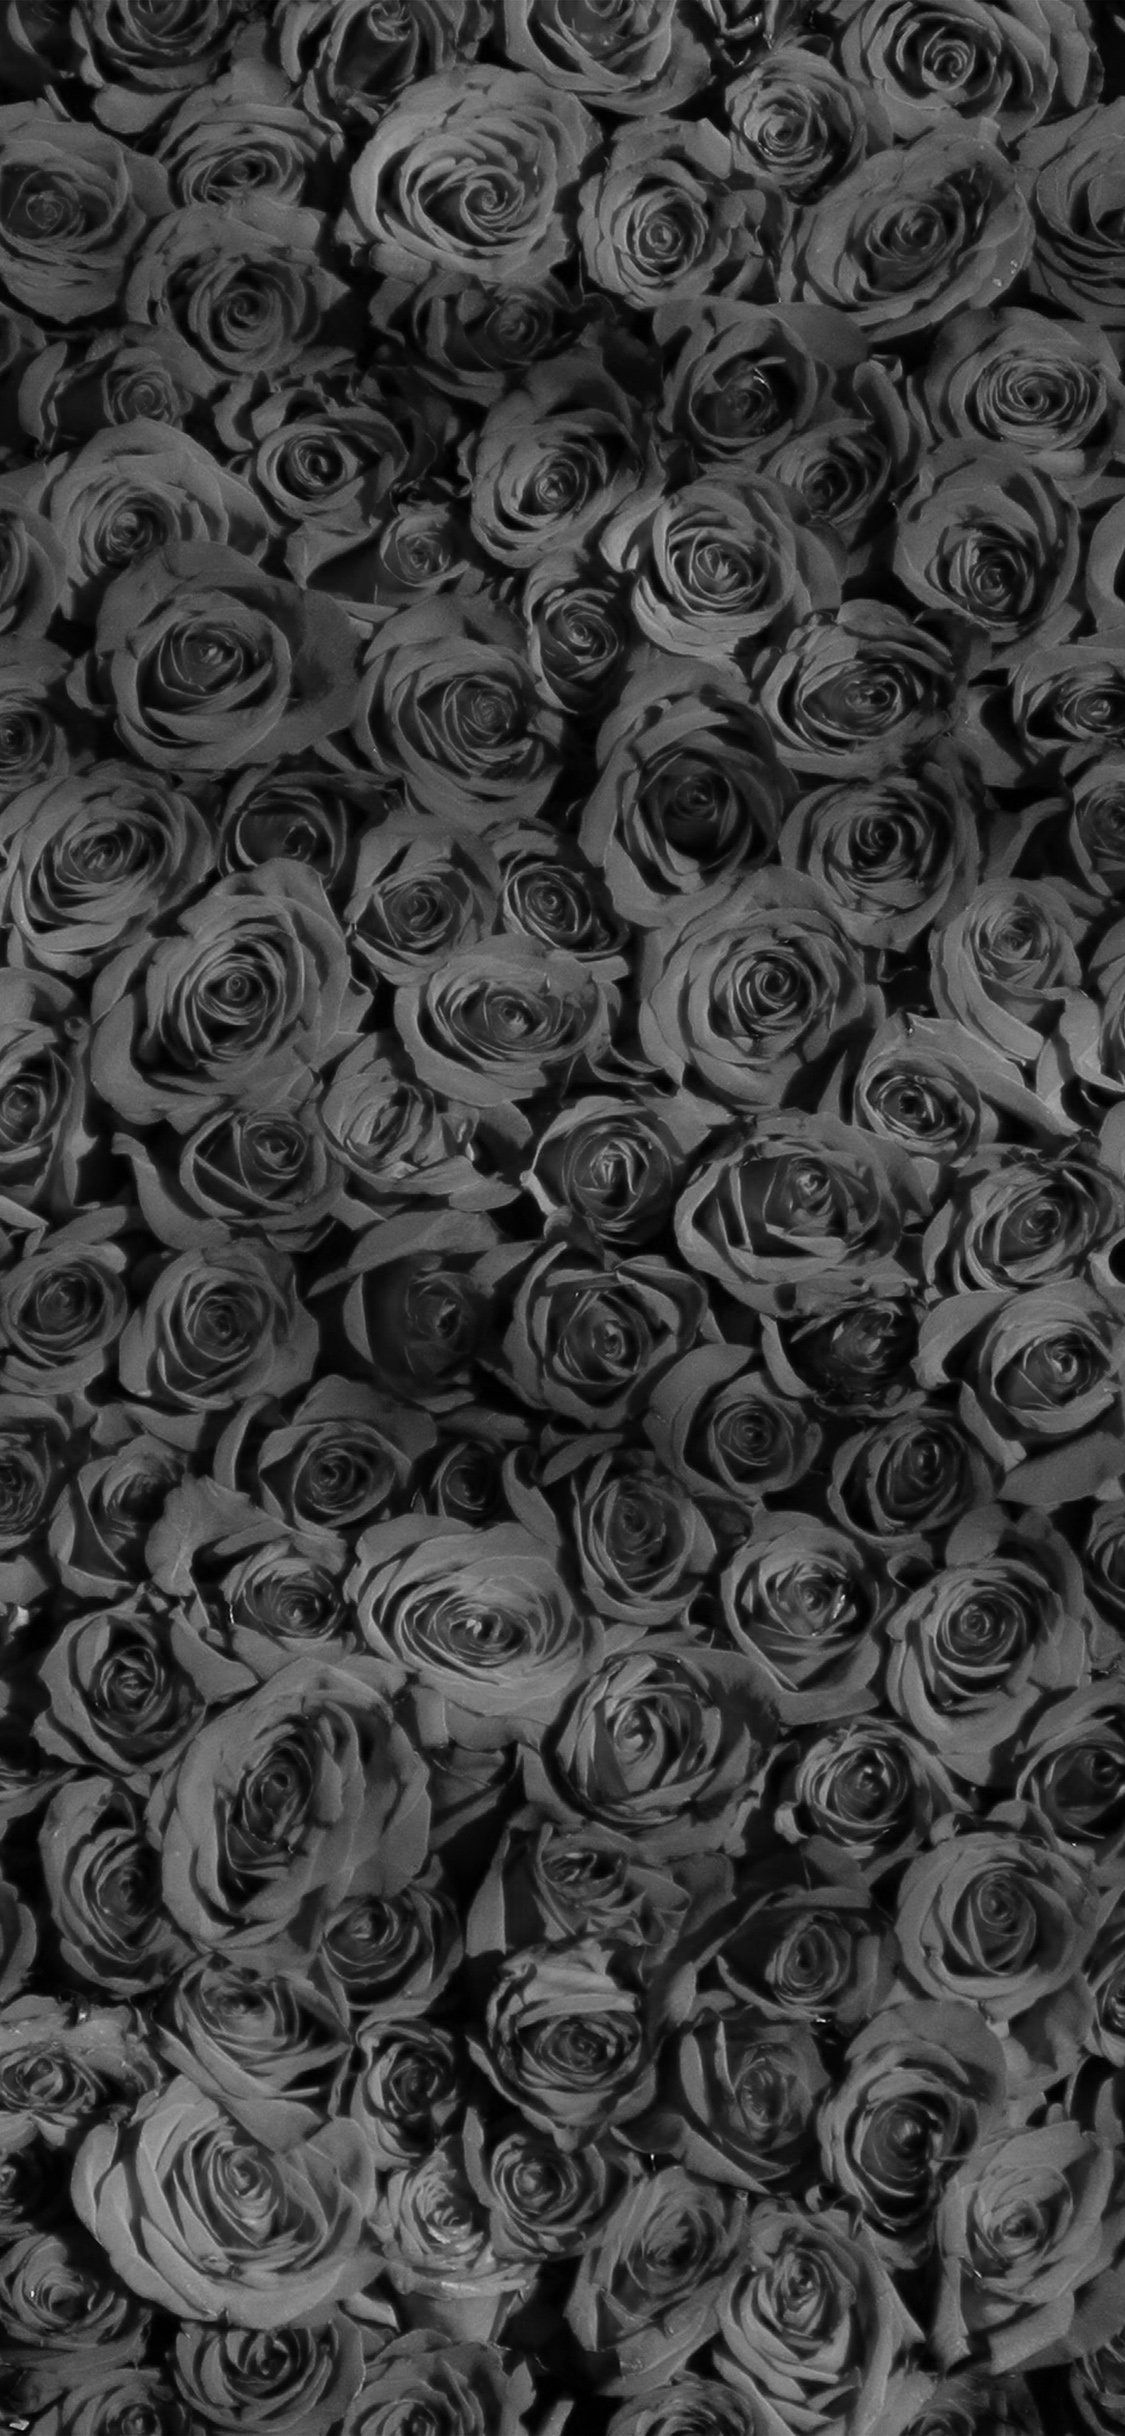 Dark Floral Iphone Wallpapers Top Free Dark Floral Iphone Backgrounds Wallpaperaccess